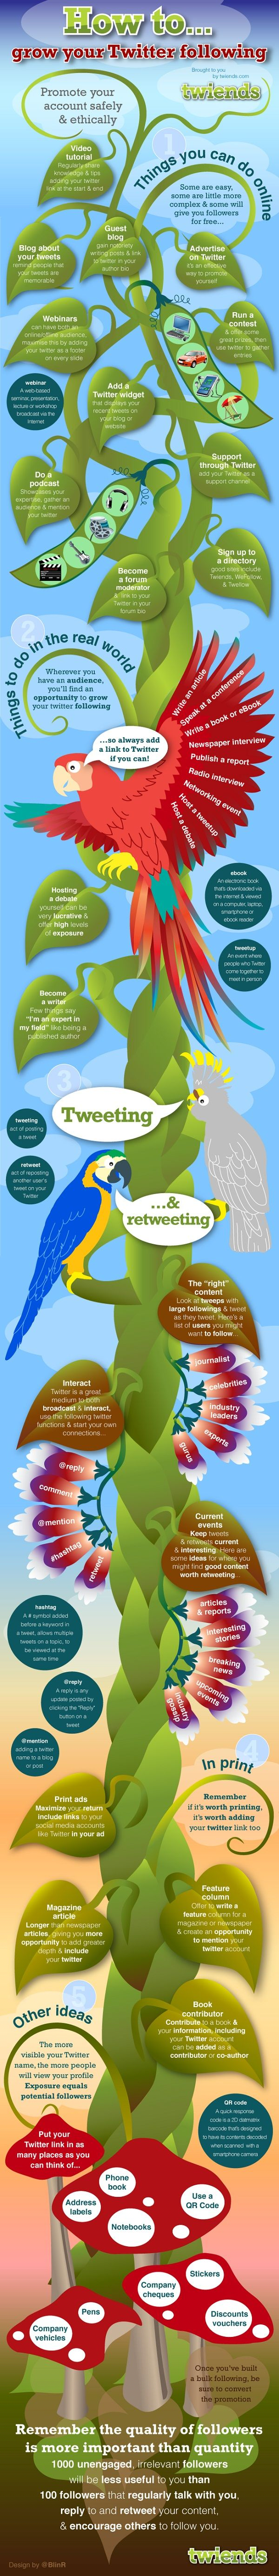 How to Get More Twitter Follow